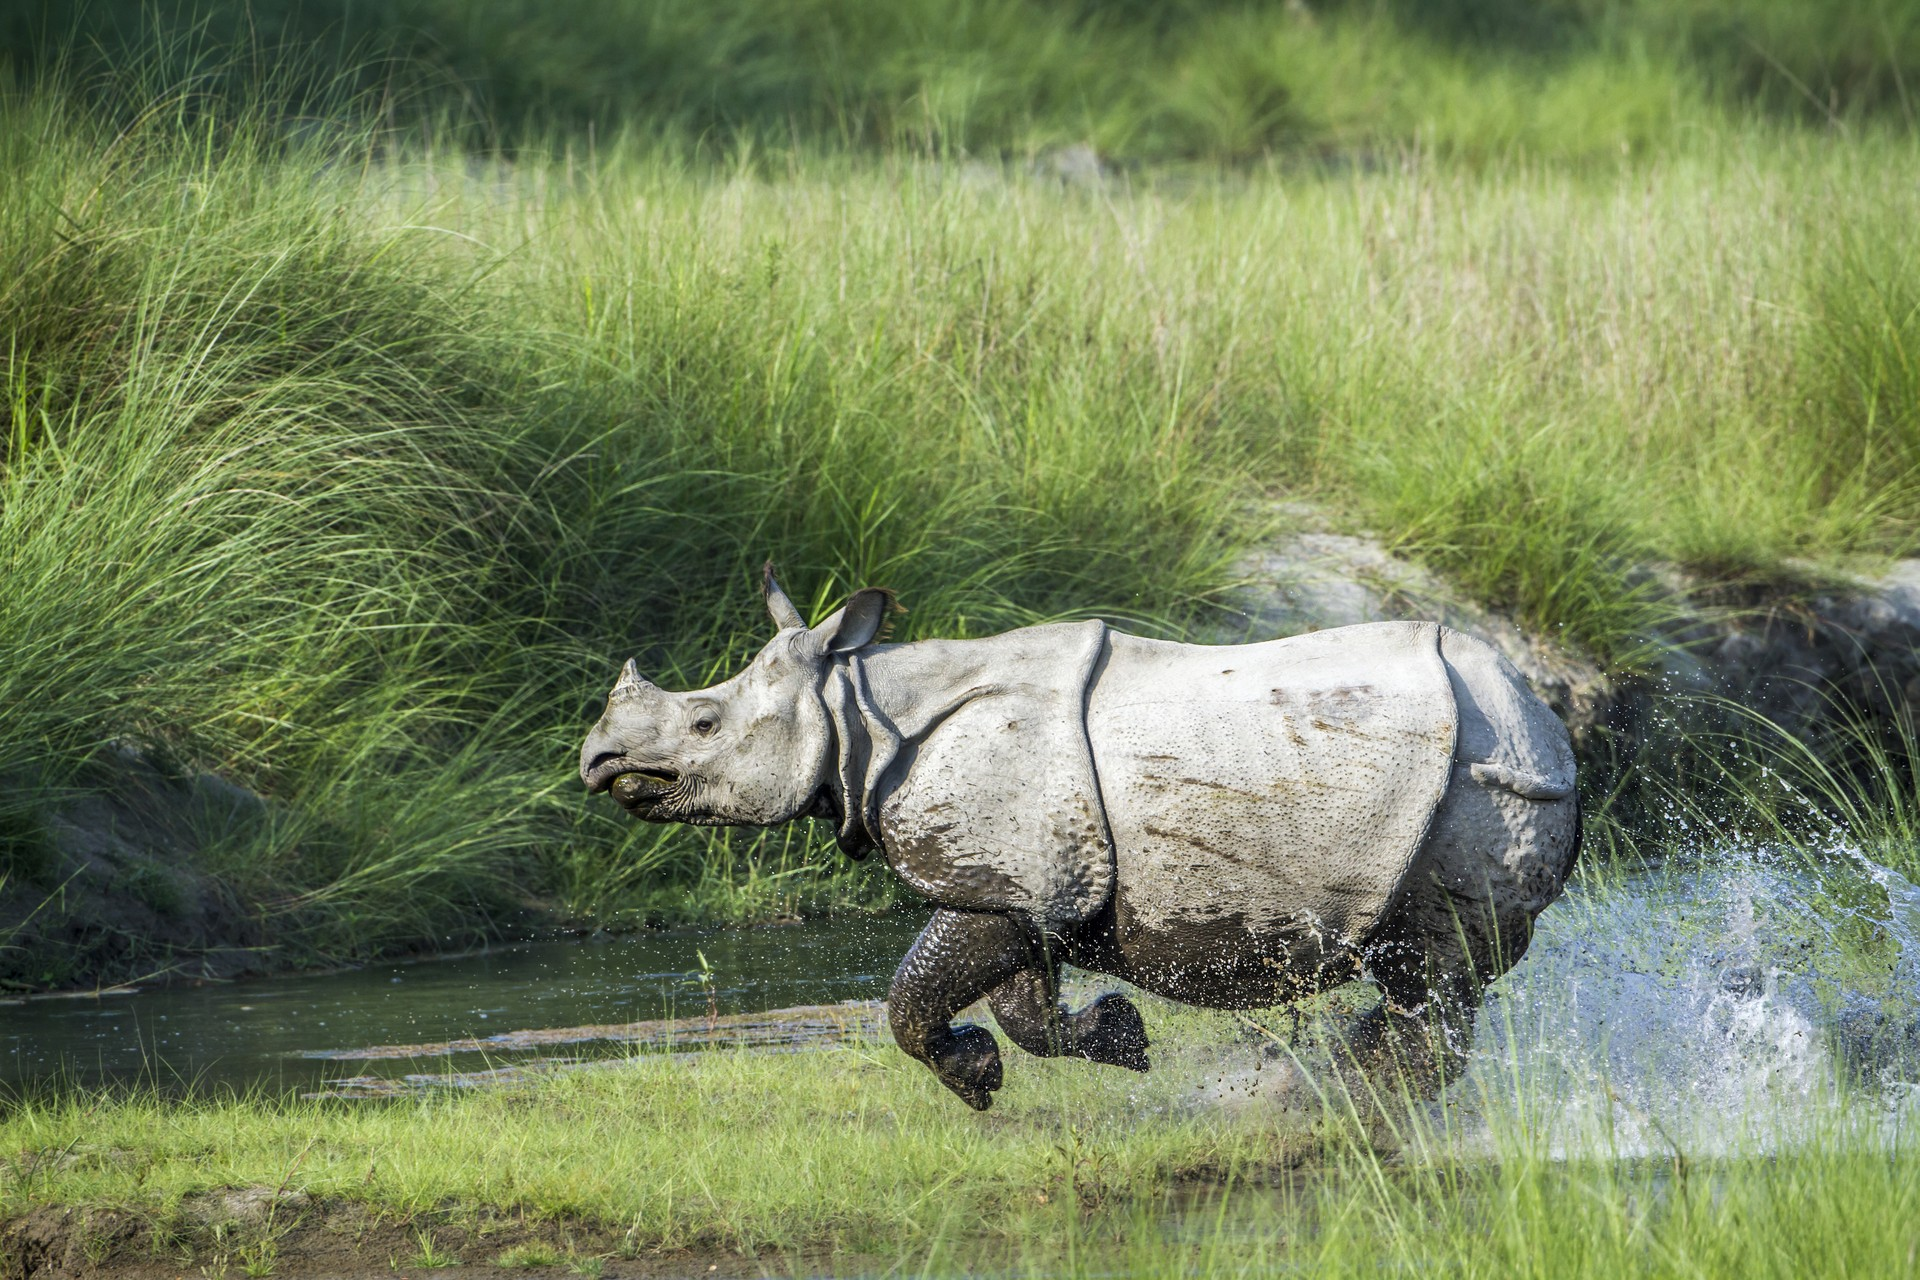 Indian rhino in Chitwan National Park